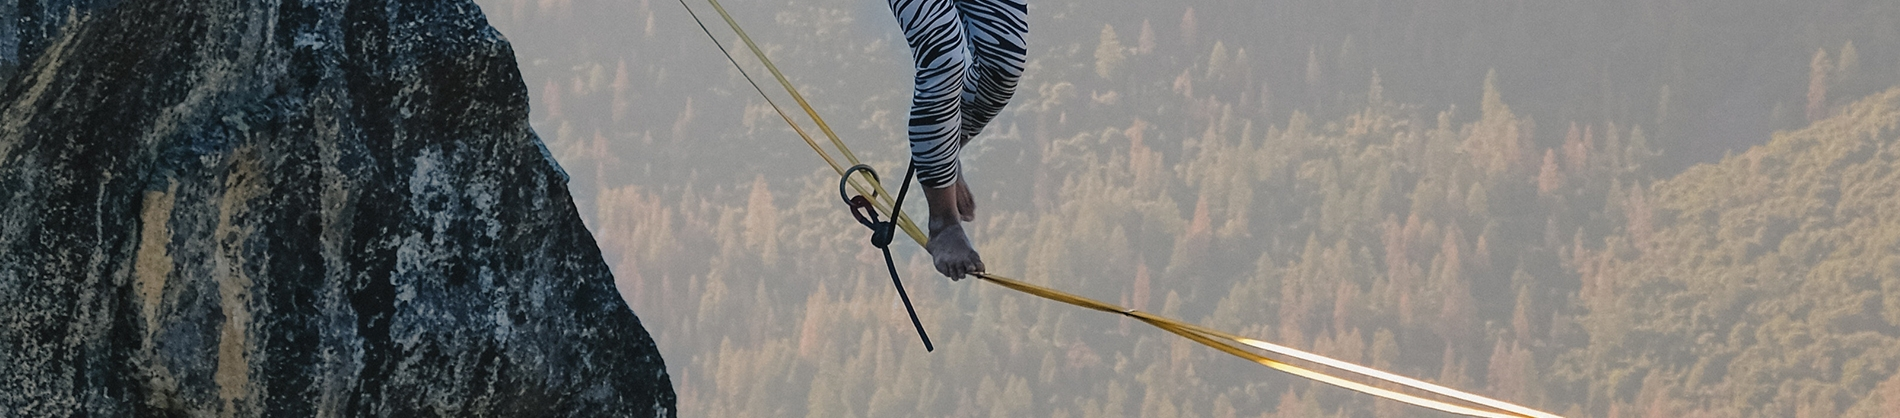 A person walking on a tightrope over a valley